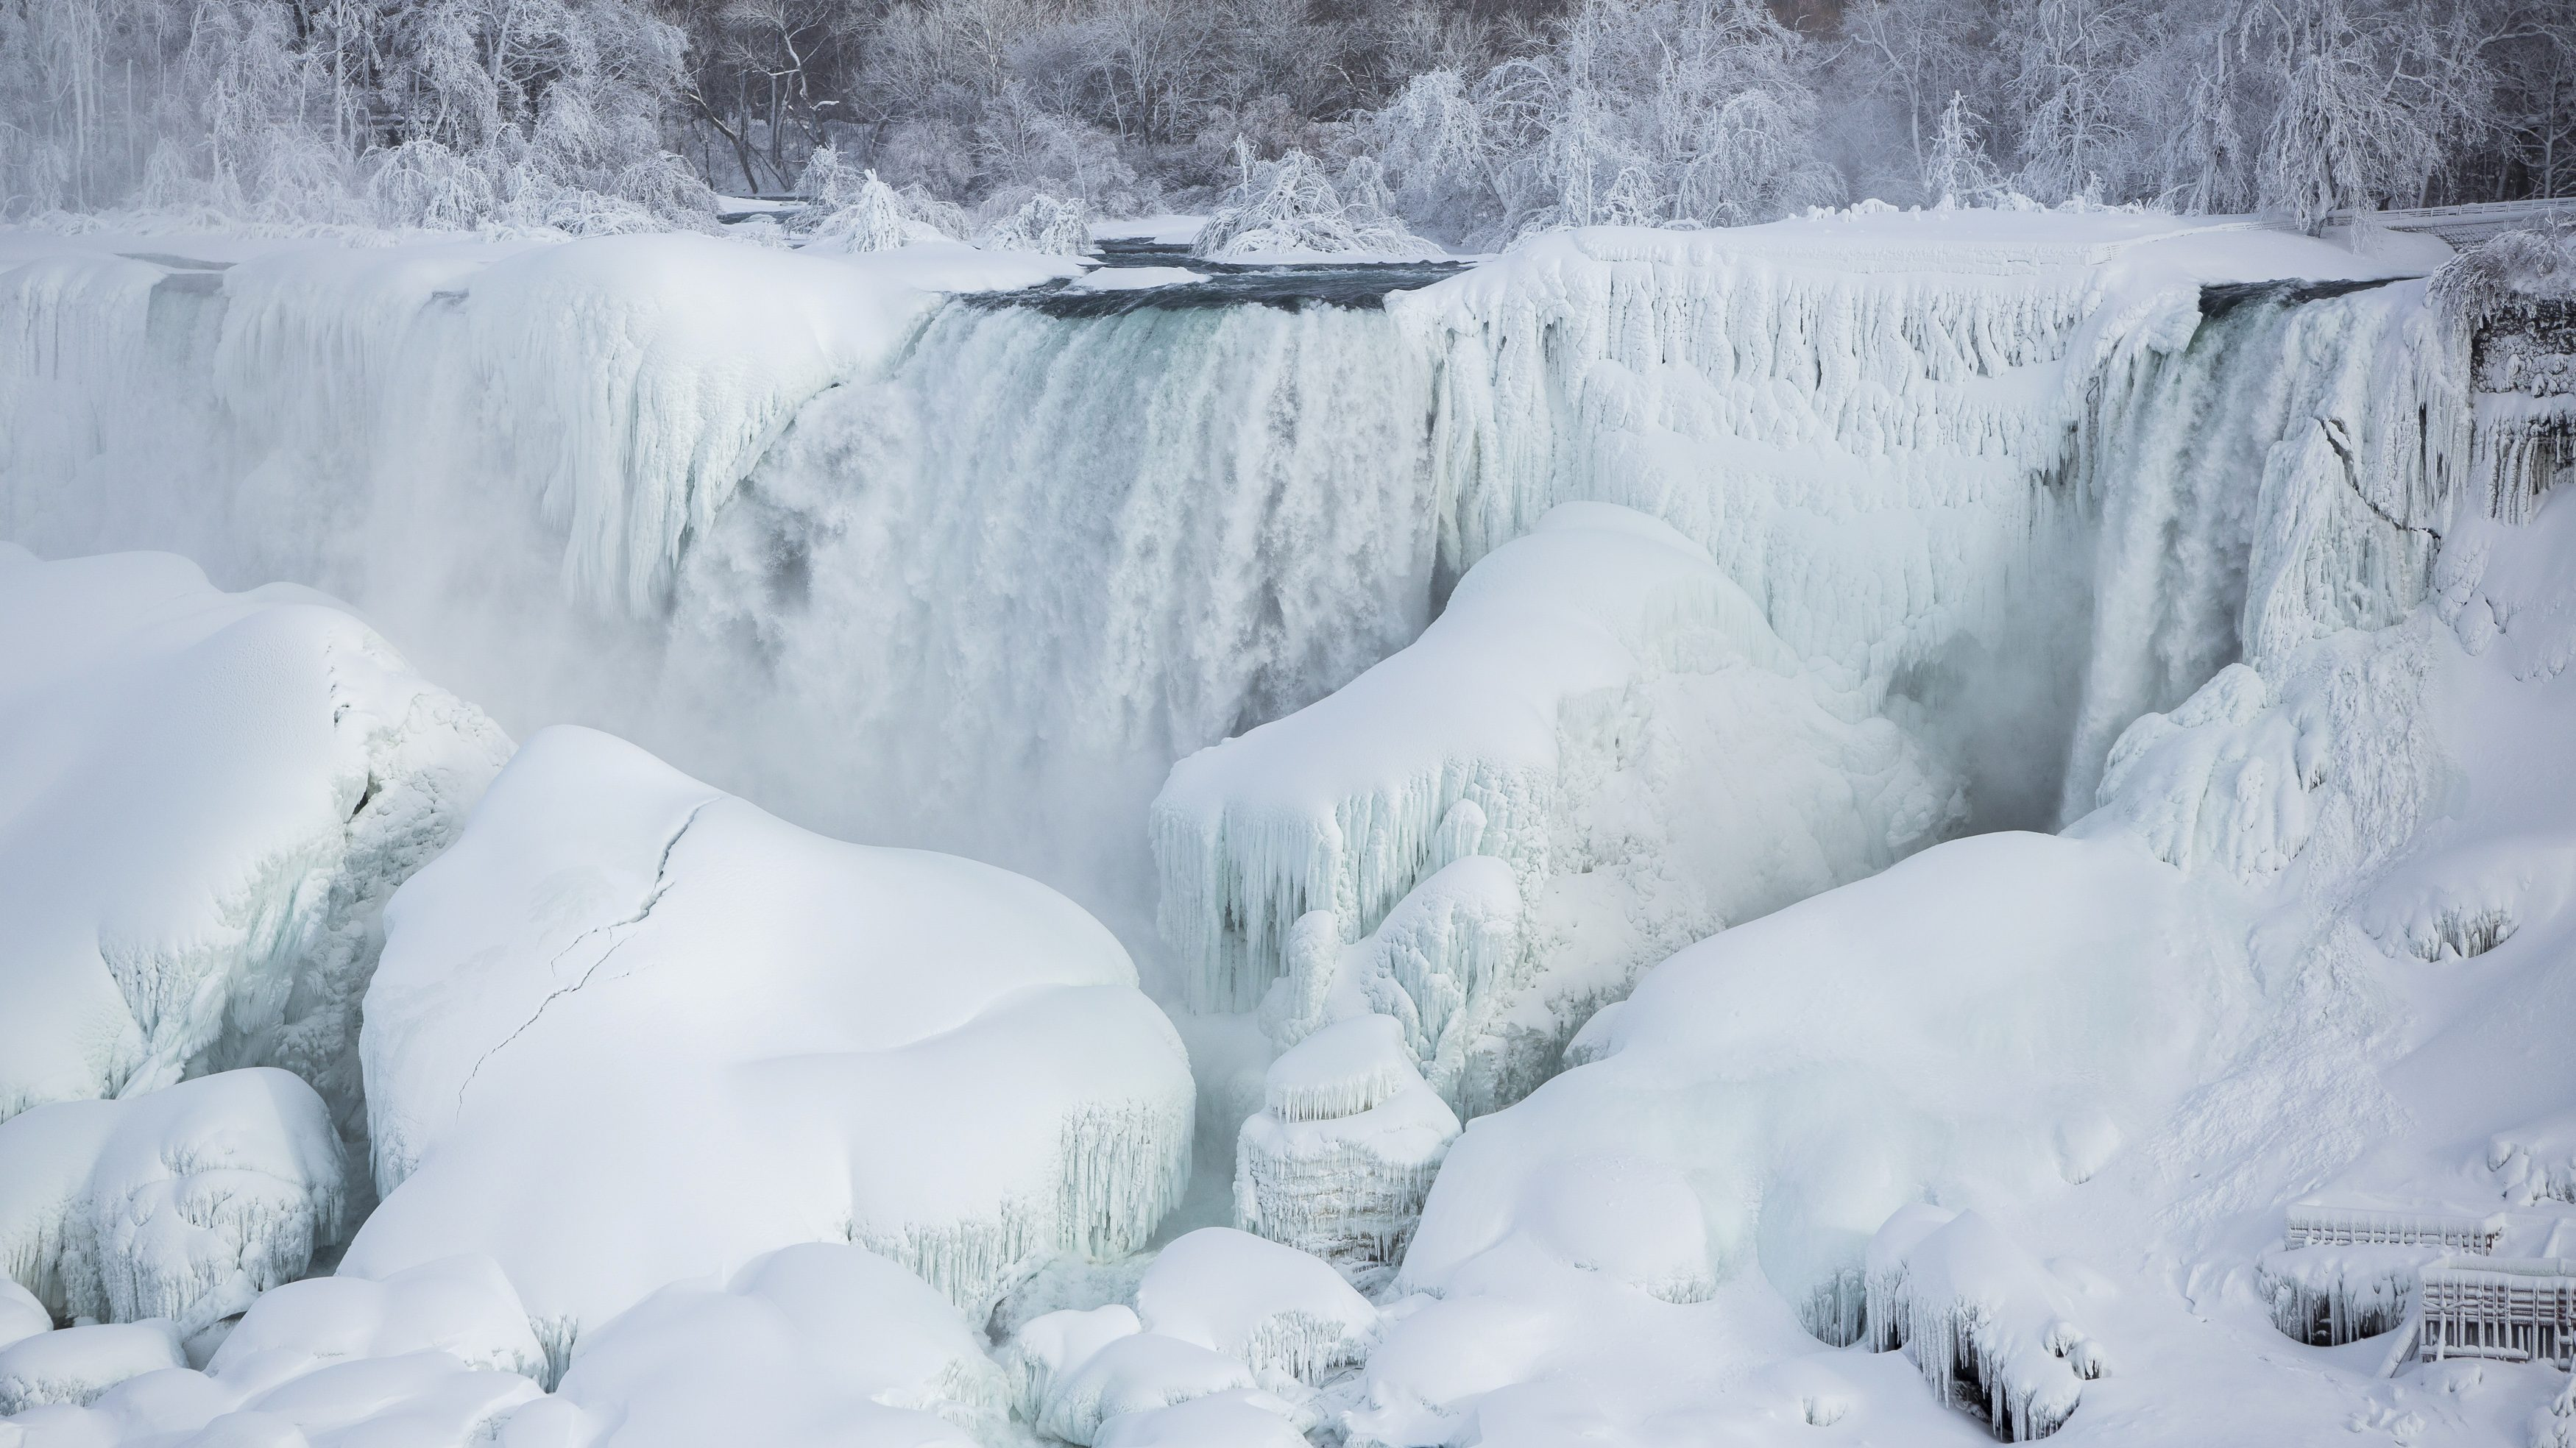 A partially frozen American Falls in sub freezing temperatures is seen in Niagara Falls, Ontario February 17, 2015. Temperature dropped to 6 degrees Fahrenheit (-14 Celsius) on Tuesday. The National Weather Service has issued Wind Chill Warning in Western New York from midnight Wednesday to Friday.